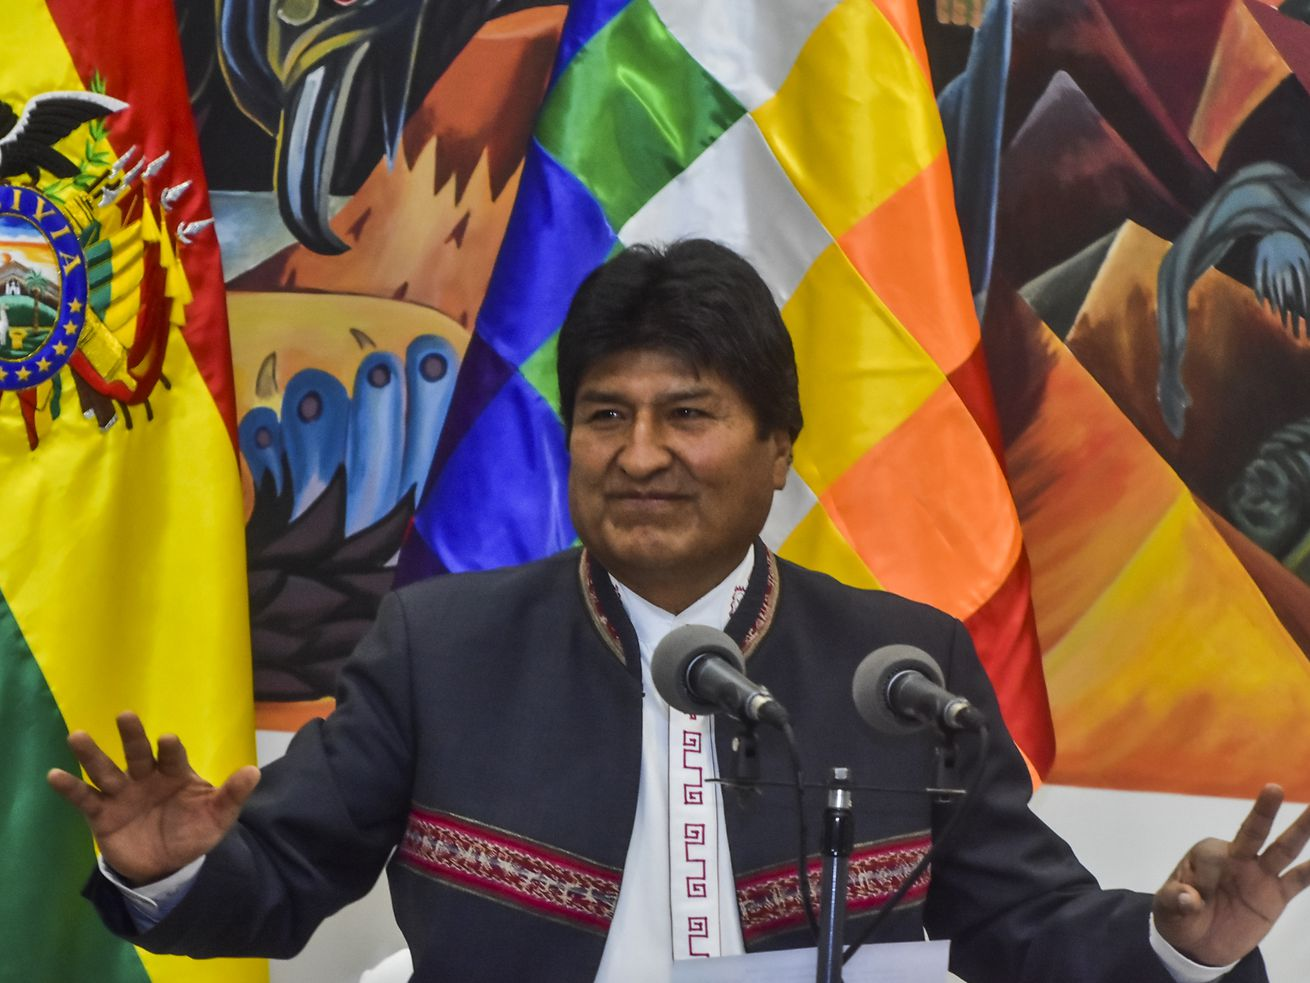 President Evo Morales speaks at a press conference, his arms outstretched. The photo takes place days after his re-election as president, which has been contested as fraudulent.